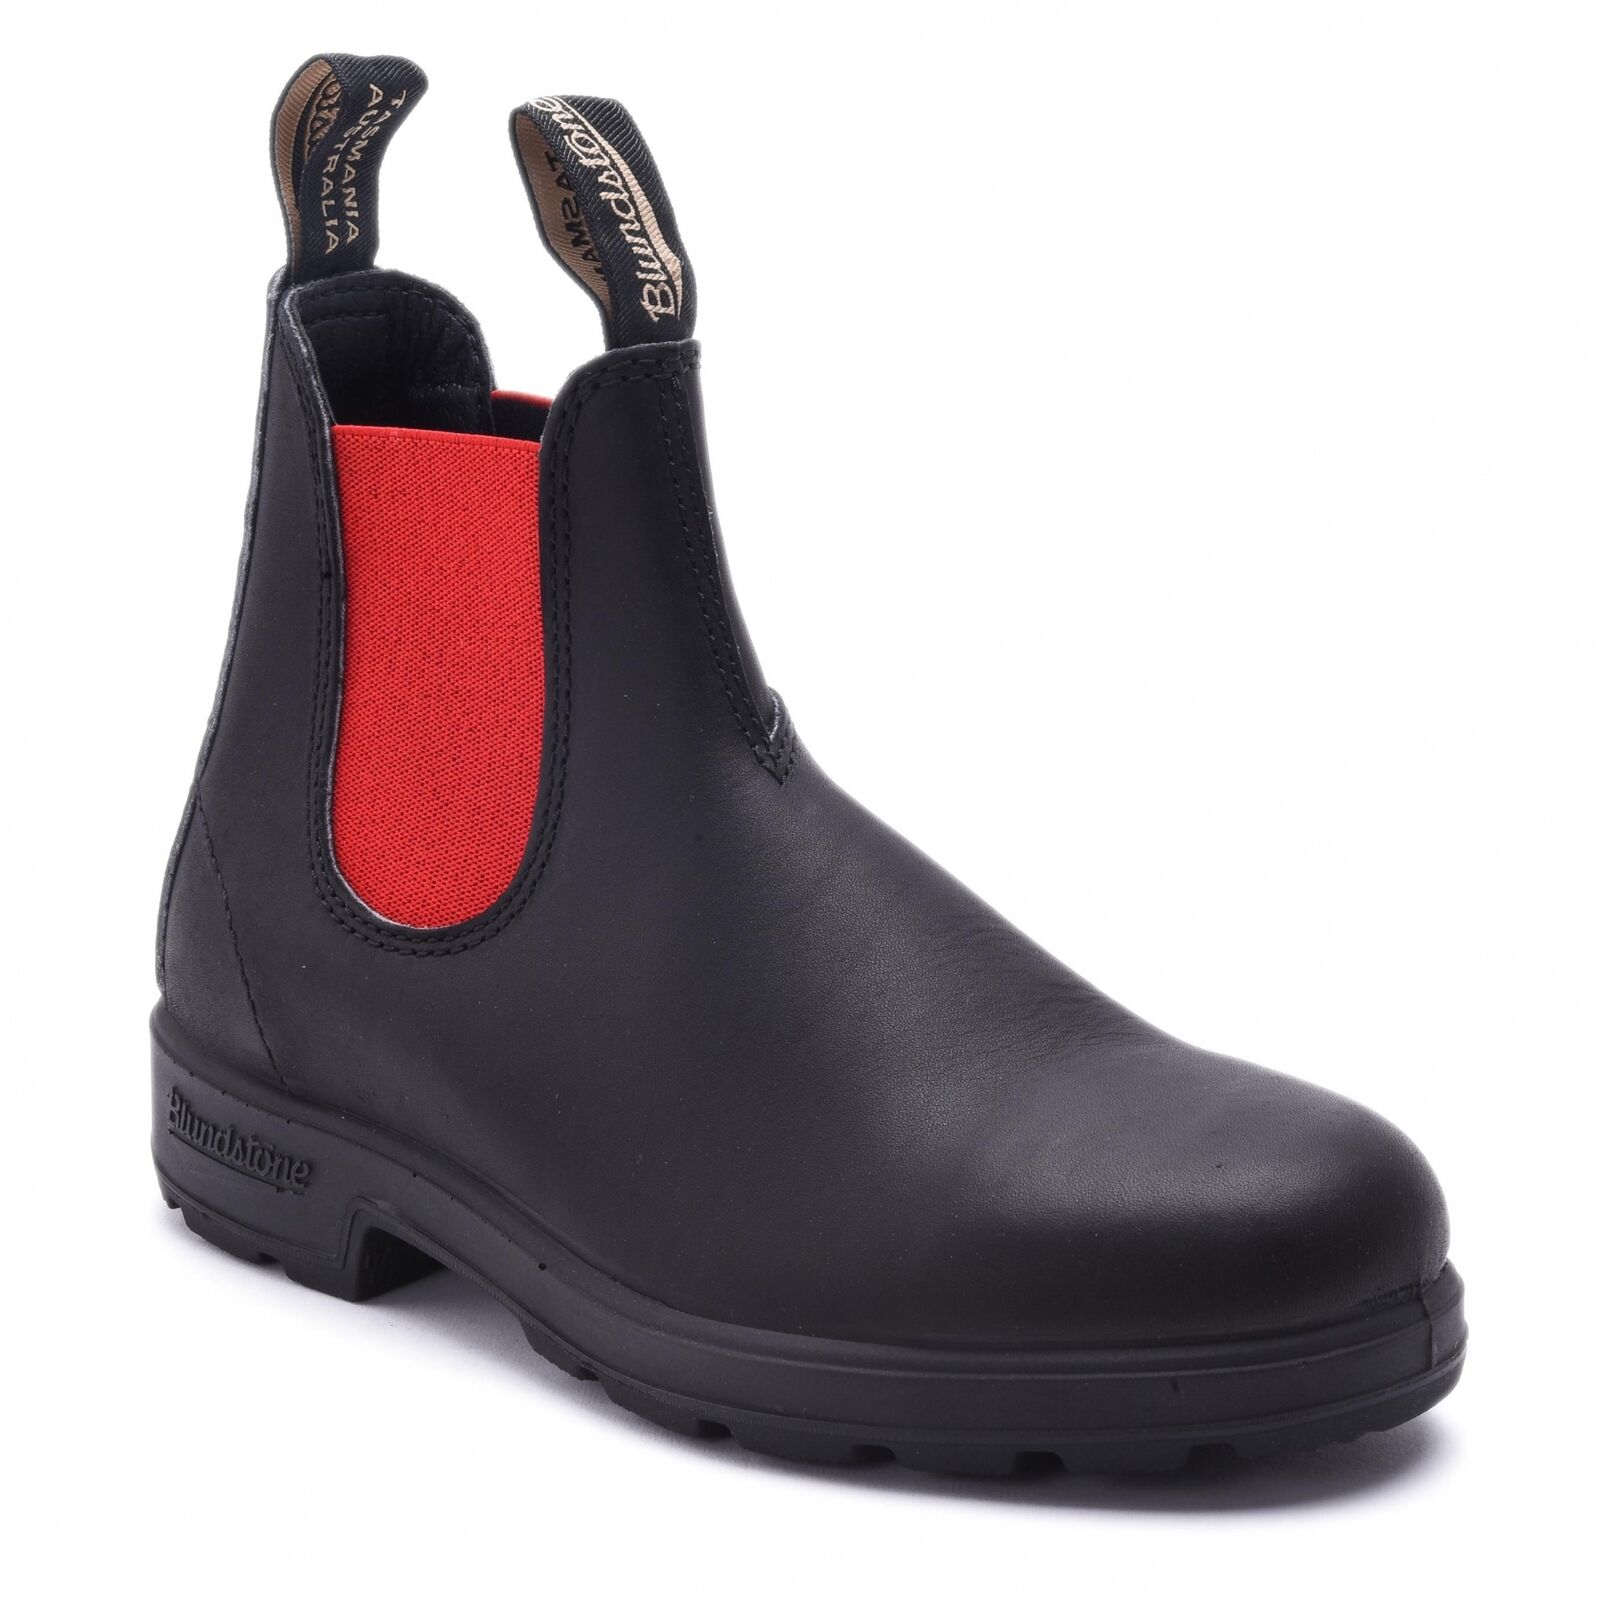 NEW bluendstone Style 508 Leather Boots For Women